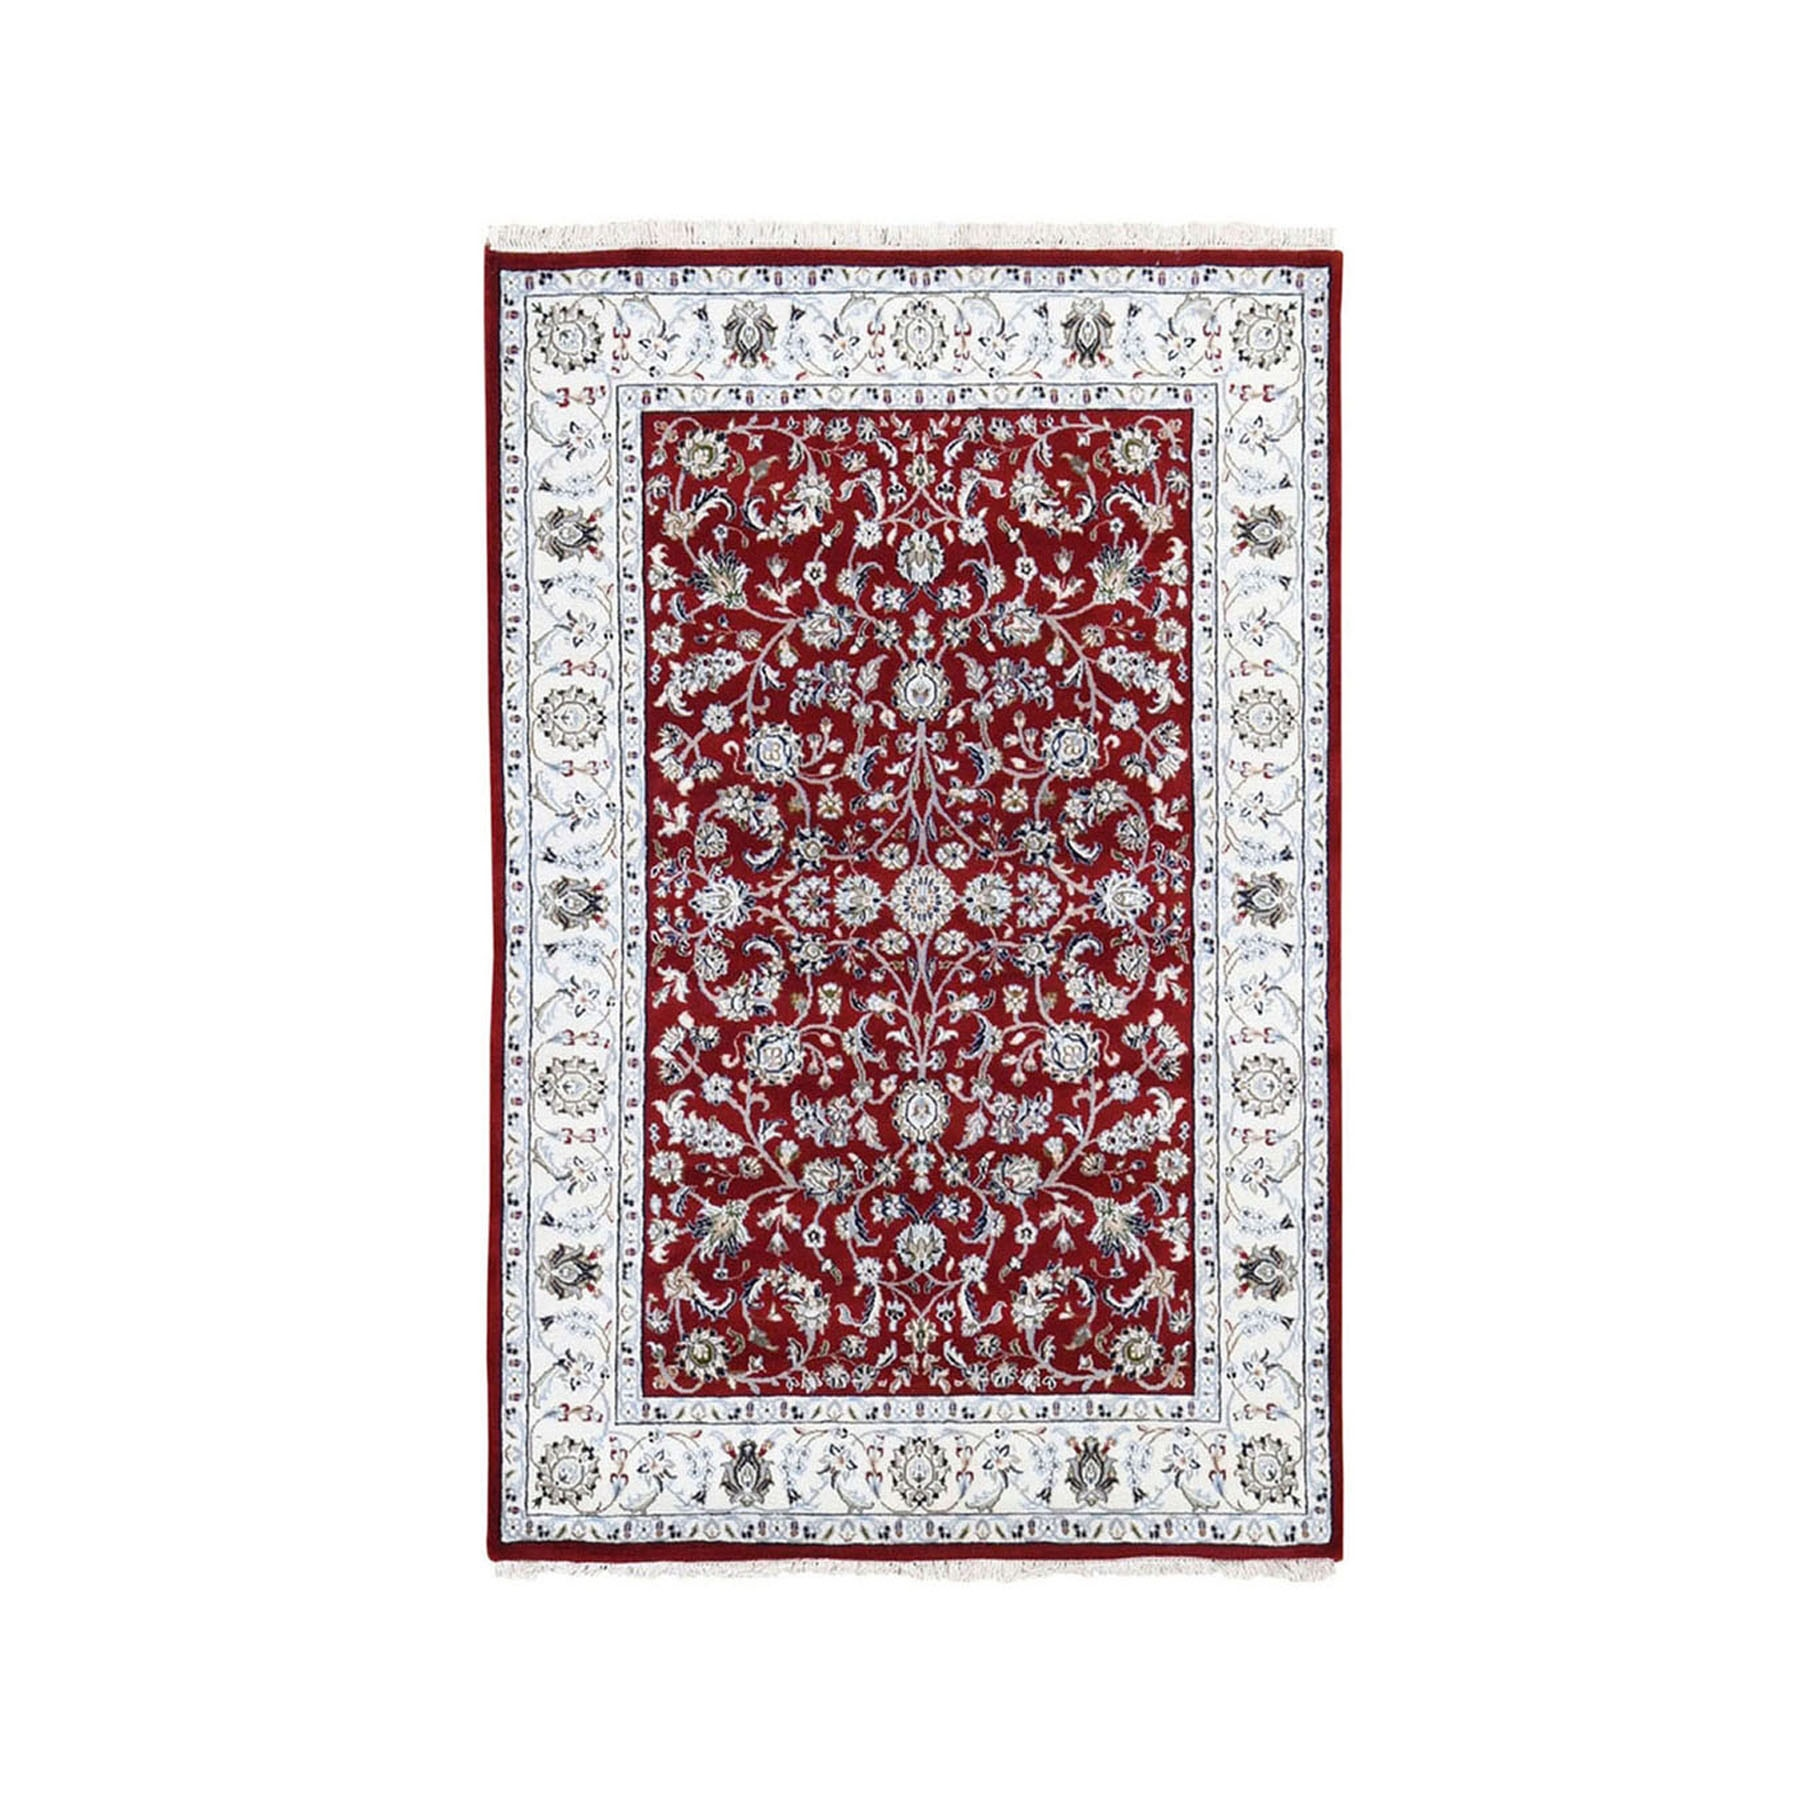 Pirniakan Collection Hand Knotted Red Rug No: 199928